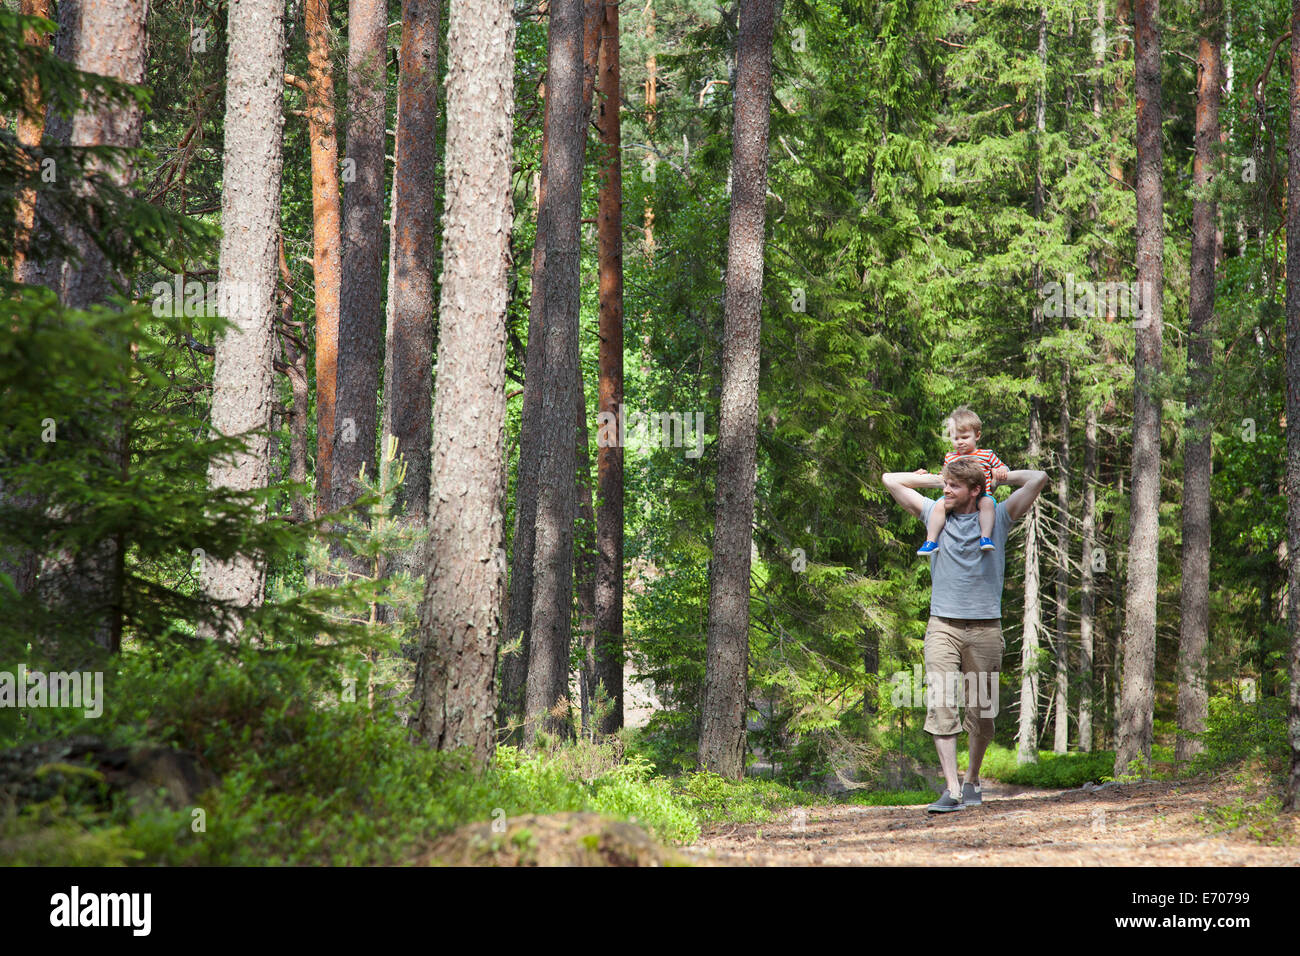 Father shoulder carrying toddler son through forest, Somerniemi, Finland - Stock Image